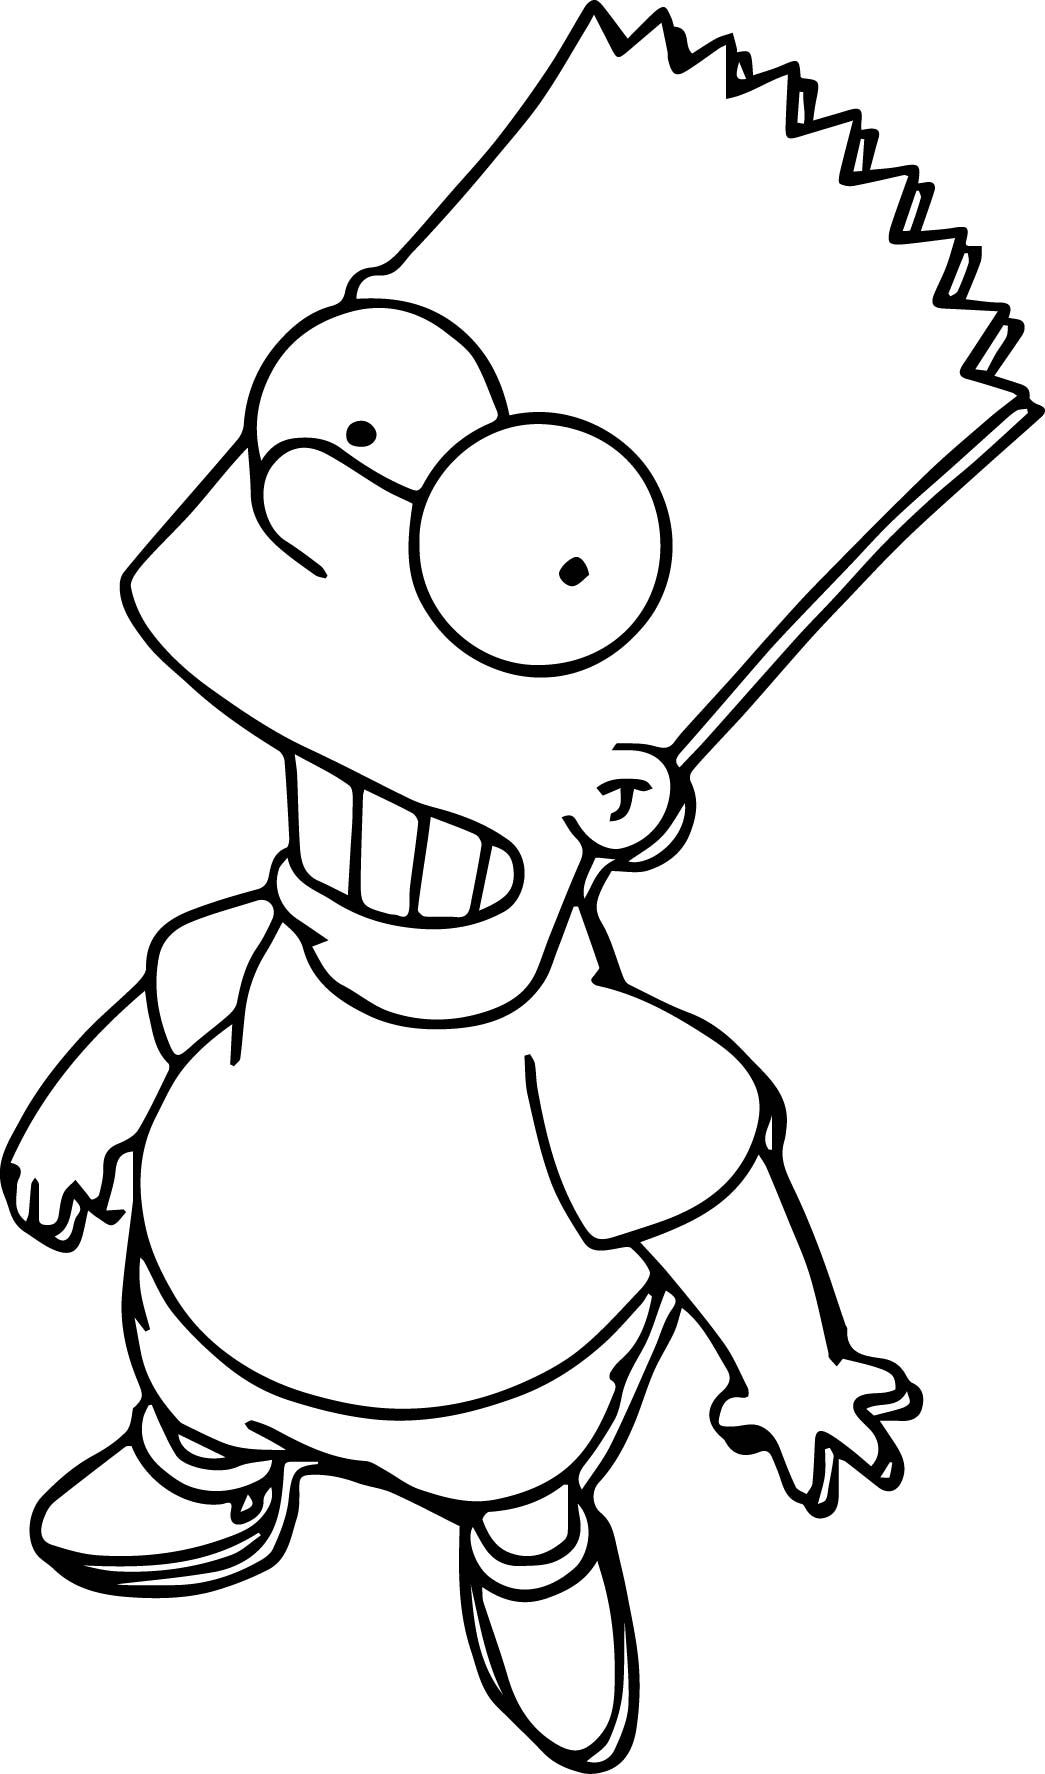 Awesome Bart The Simpsons Look Up Coloring Page Coloring Pages Hypebeast Iphone Wallpaper The Simpsons